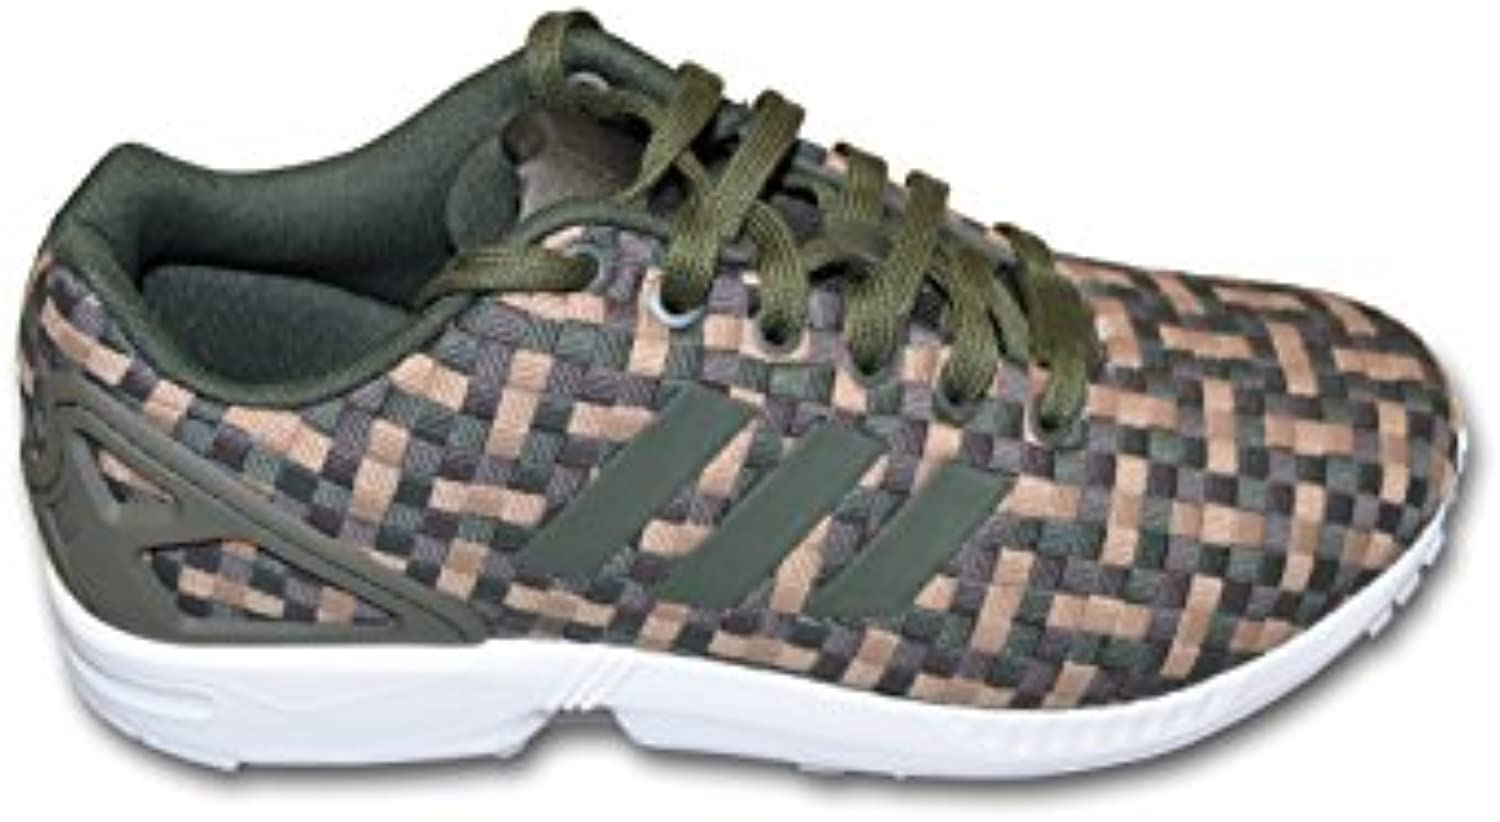 adidas Herren Sneaker Low Tops  Grün   Green Brown   Größe: